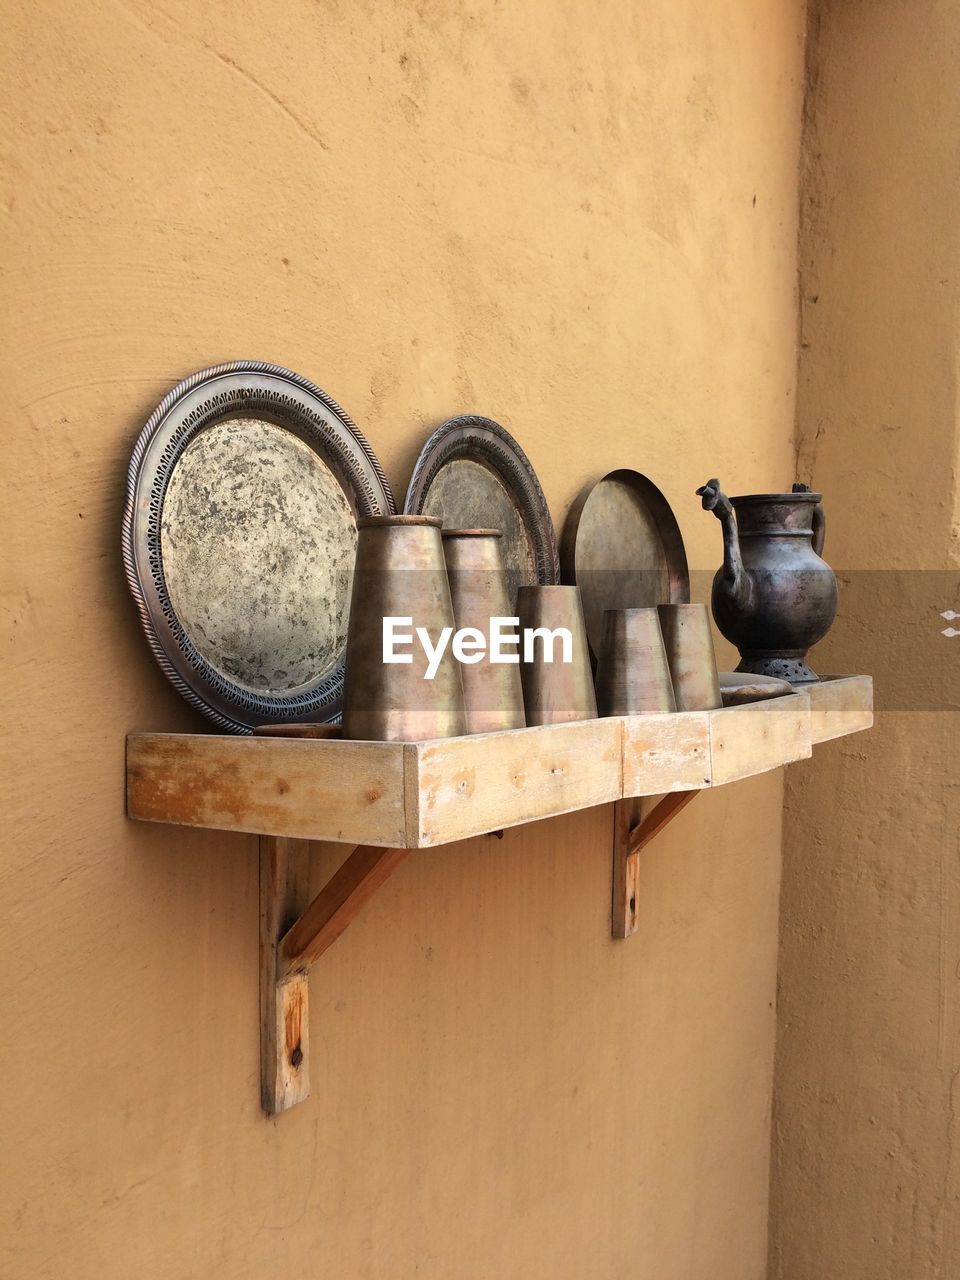 Old utensils and plates on shelf against wall